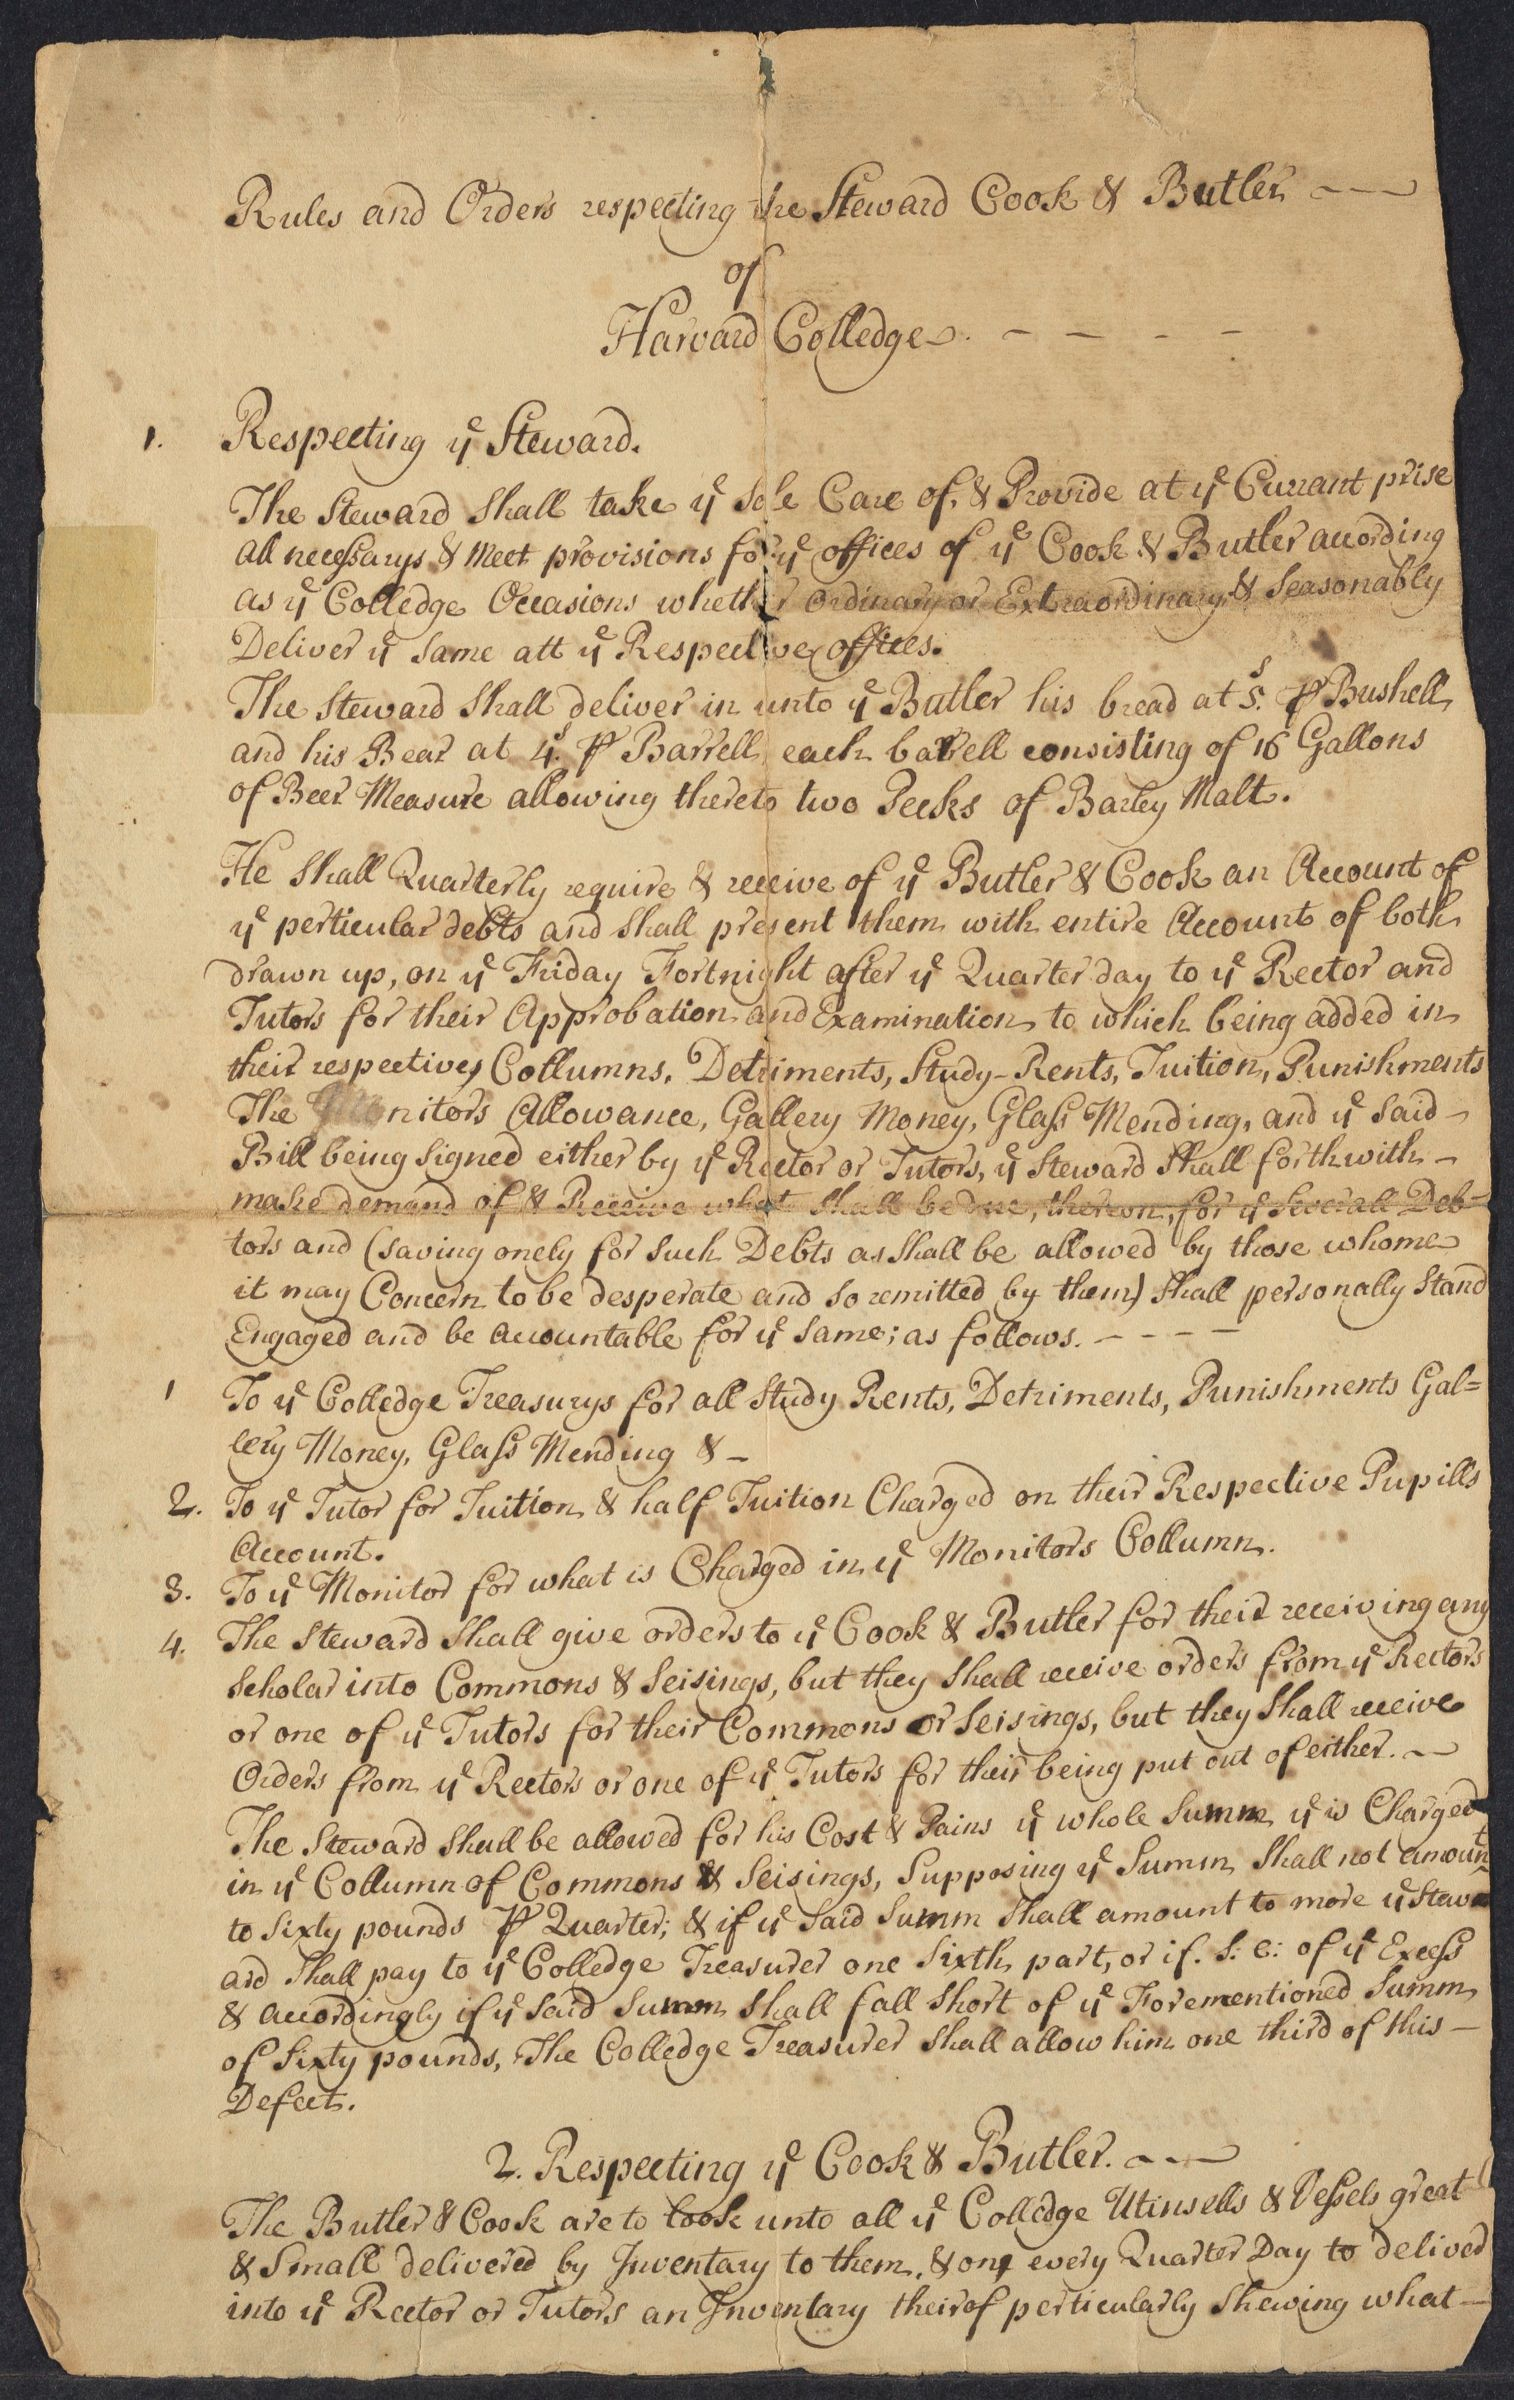 Rules and orders respecting the Steward, Cook & Butler of Harvard College, [1686]